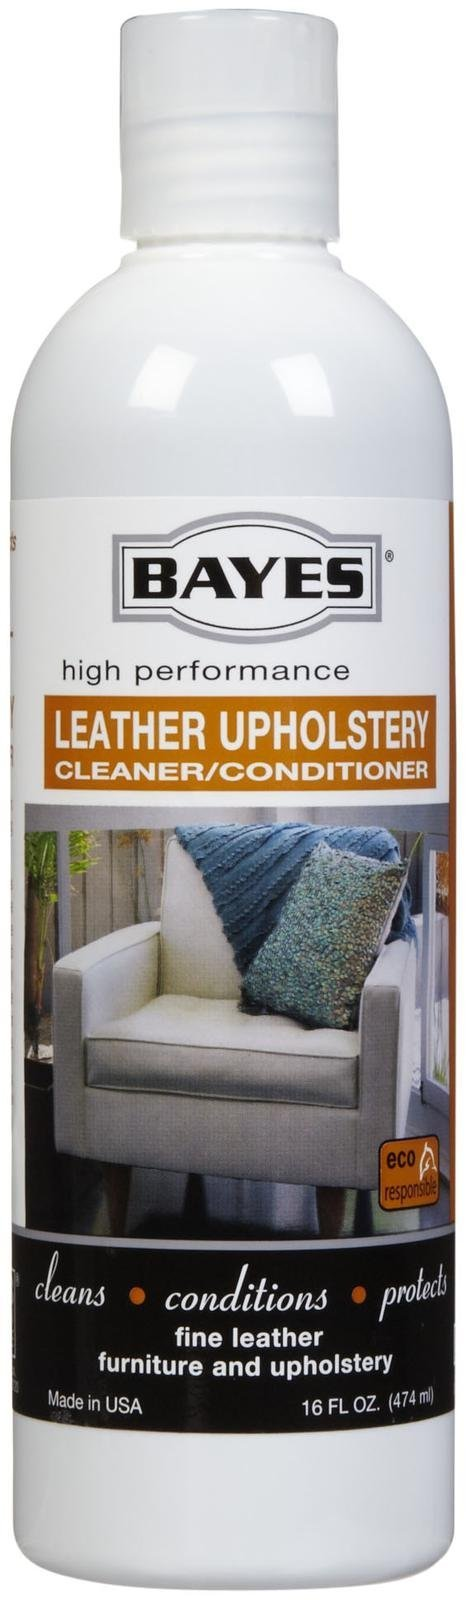 Bayes Premium High Performance Non Toxic Leather Upholstery Cleaner and Conditioner - 16 Ounce - Prevents Drying, Cracking or Fading of Leather Couches, Car Seats, Shoes, and Purses